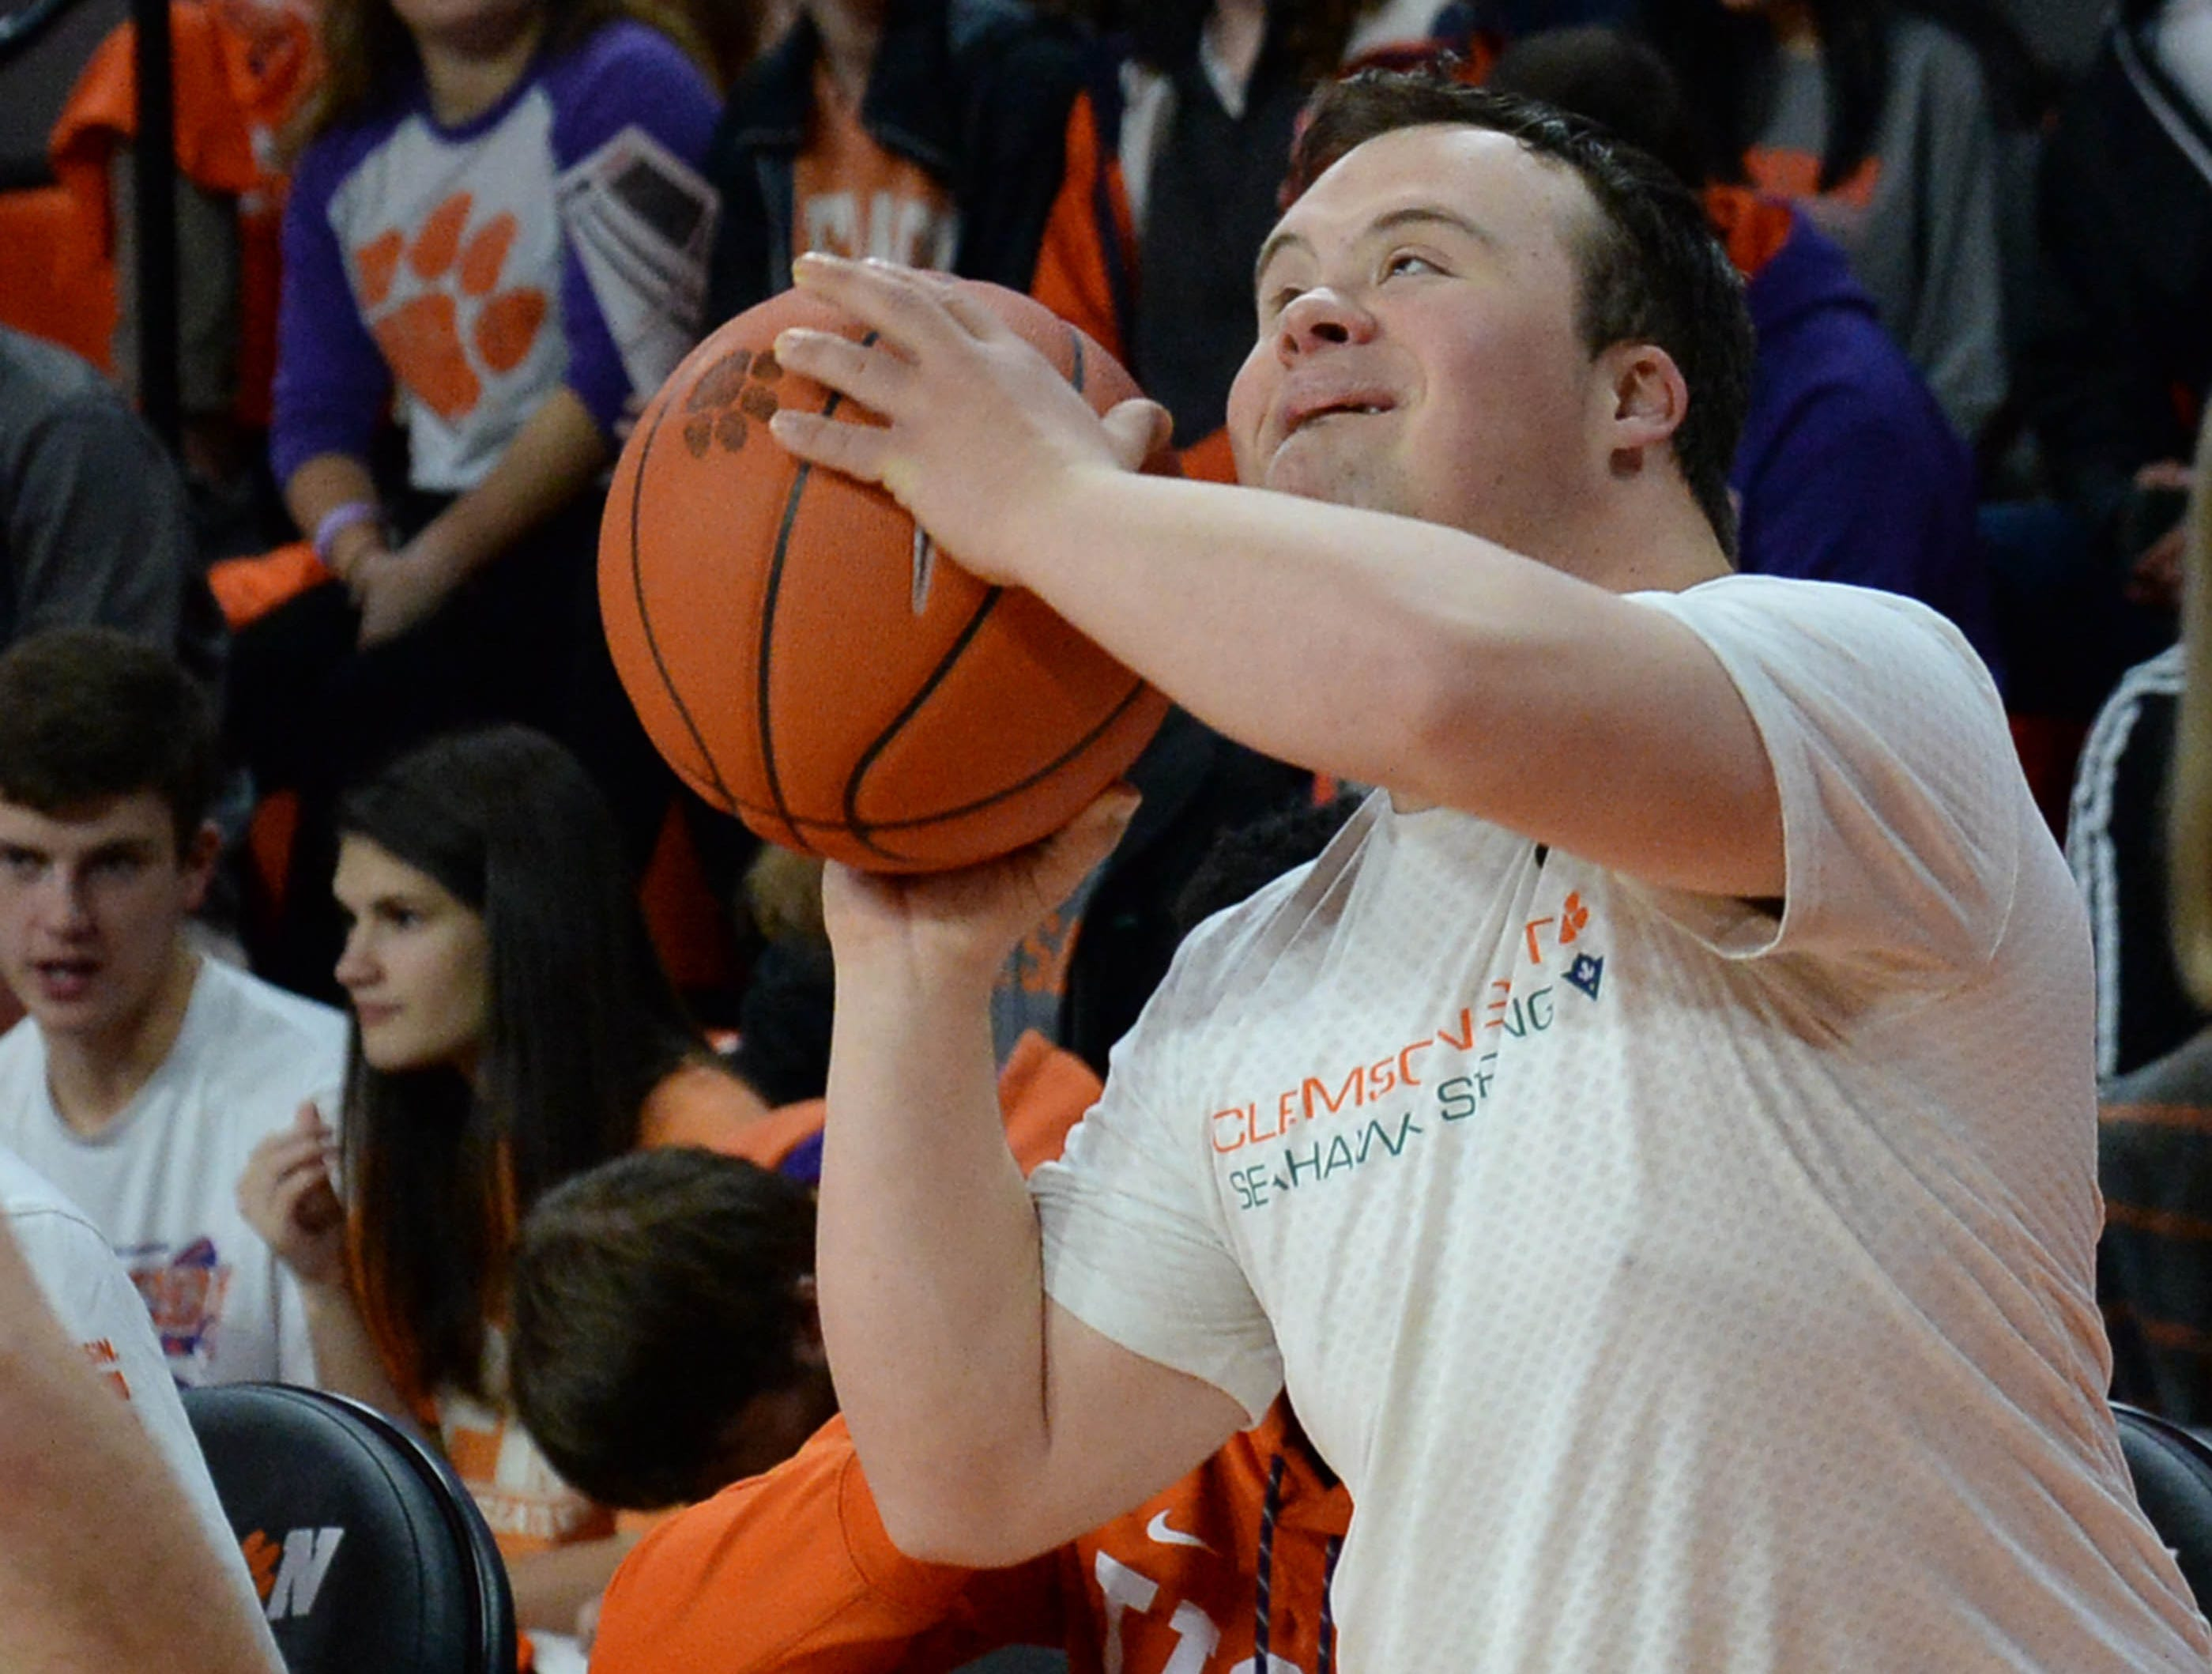 """Clemson men's basketball team manager Robert Lewis shoots a ball before the game against Syracuse Saturday, March 9, 2019. Lewis, enrolled in the ClemsonLIFE program, is nicknamed """"Money Rob"""". Lewis, with Downs-syndrome, received national attention when as a 19-year-old at Franklin Road Academy in Nashville made a game winning three-point shot during a high school game in February 2016 on the team senior night."""